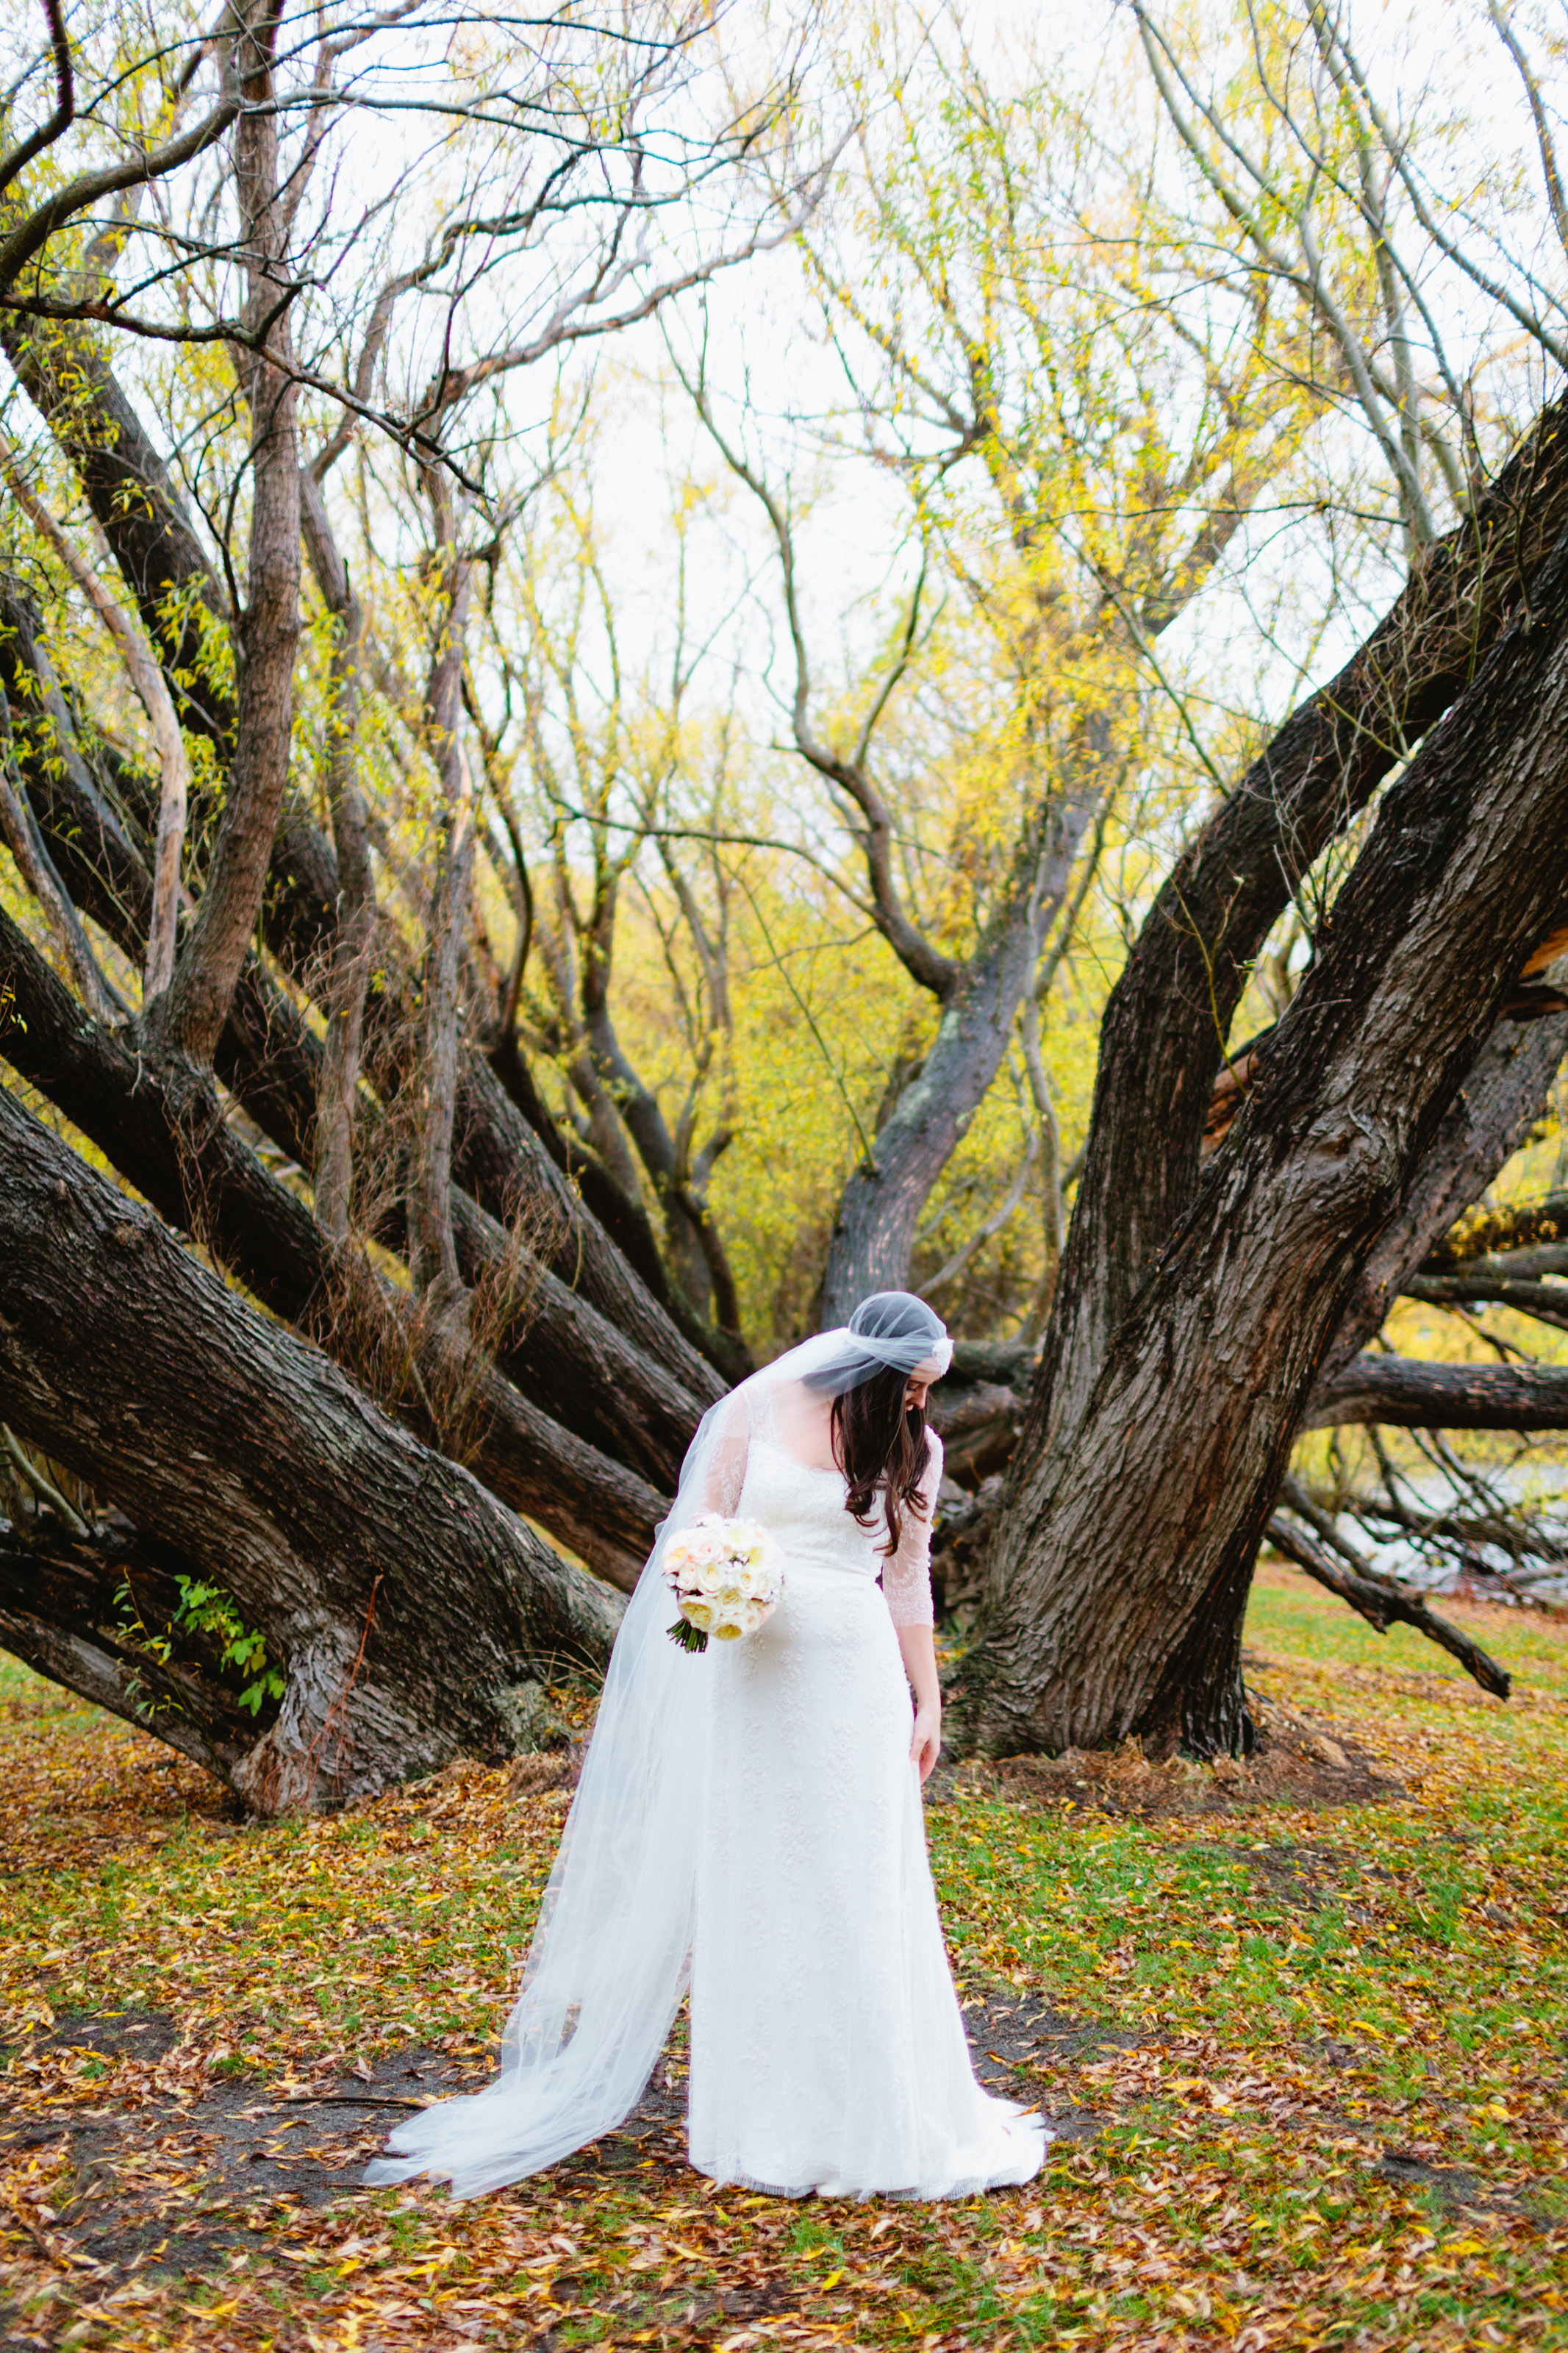 7CarolineMcCredie-Wedding-LanceJessQueenstown_0006.jpg